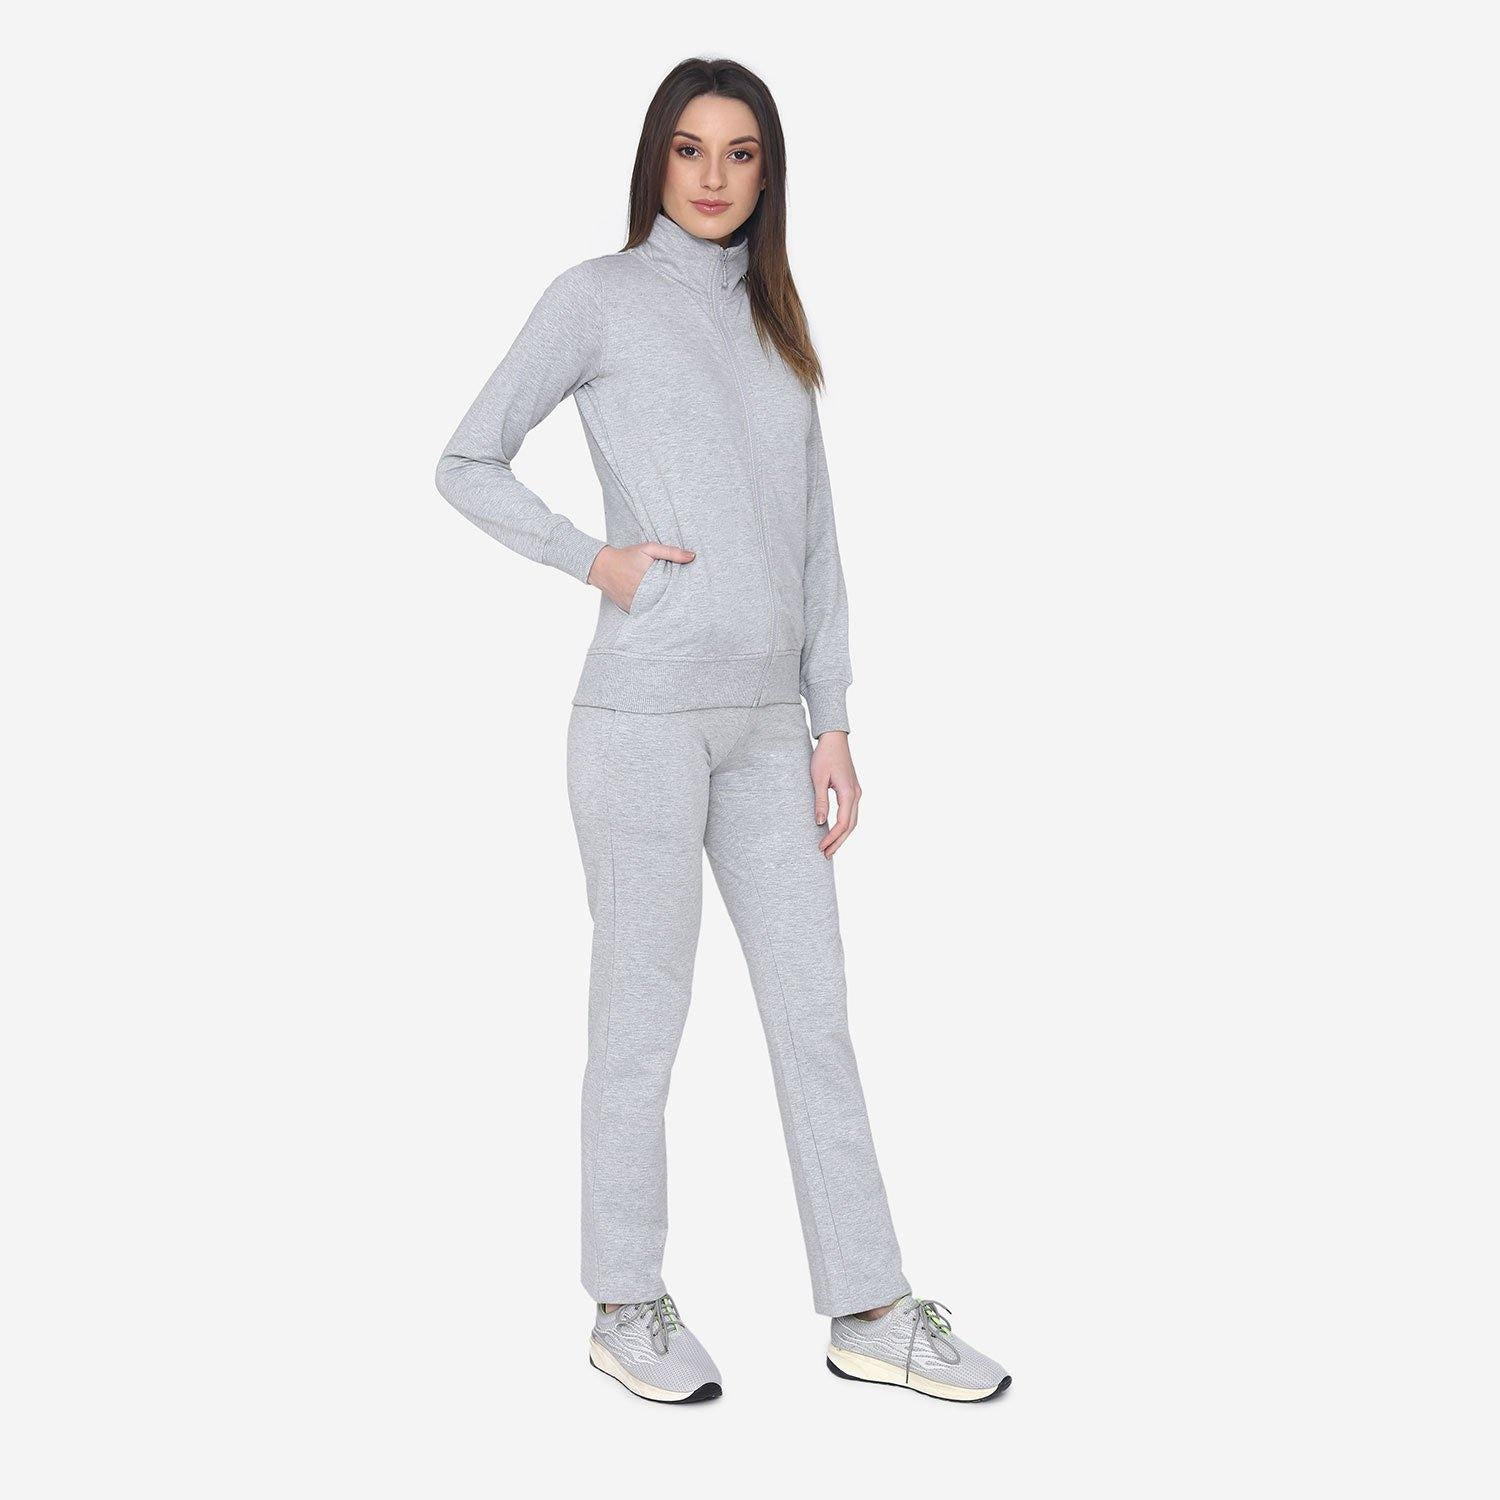 Ladies Tracksuit For Winter